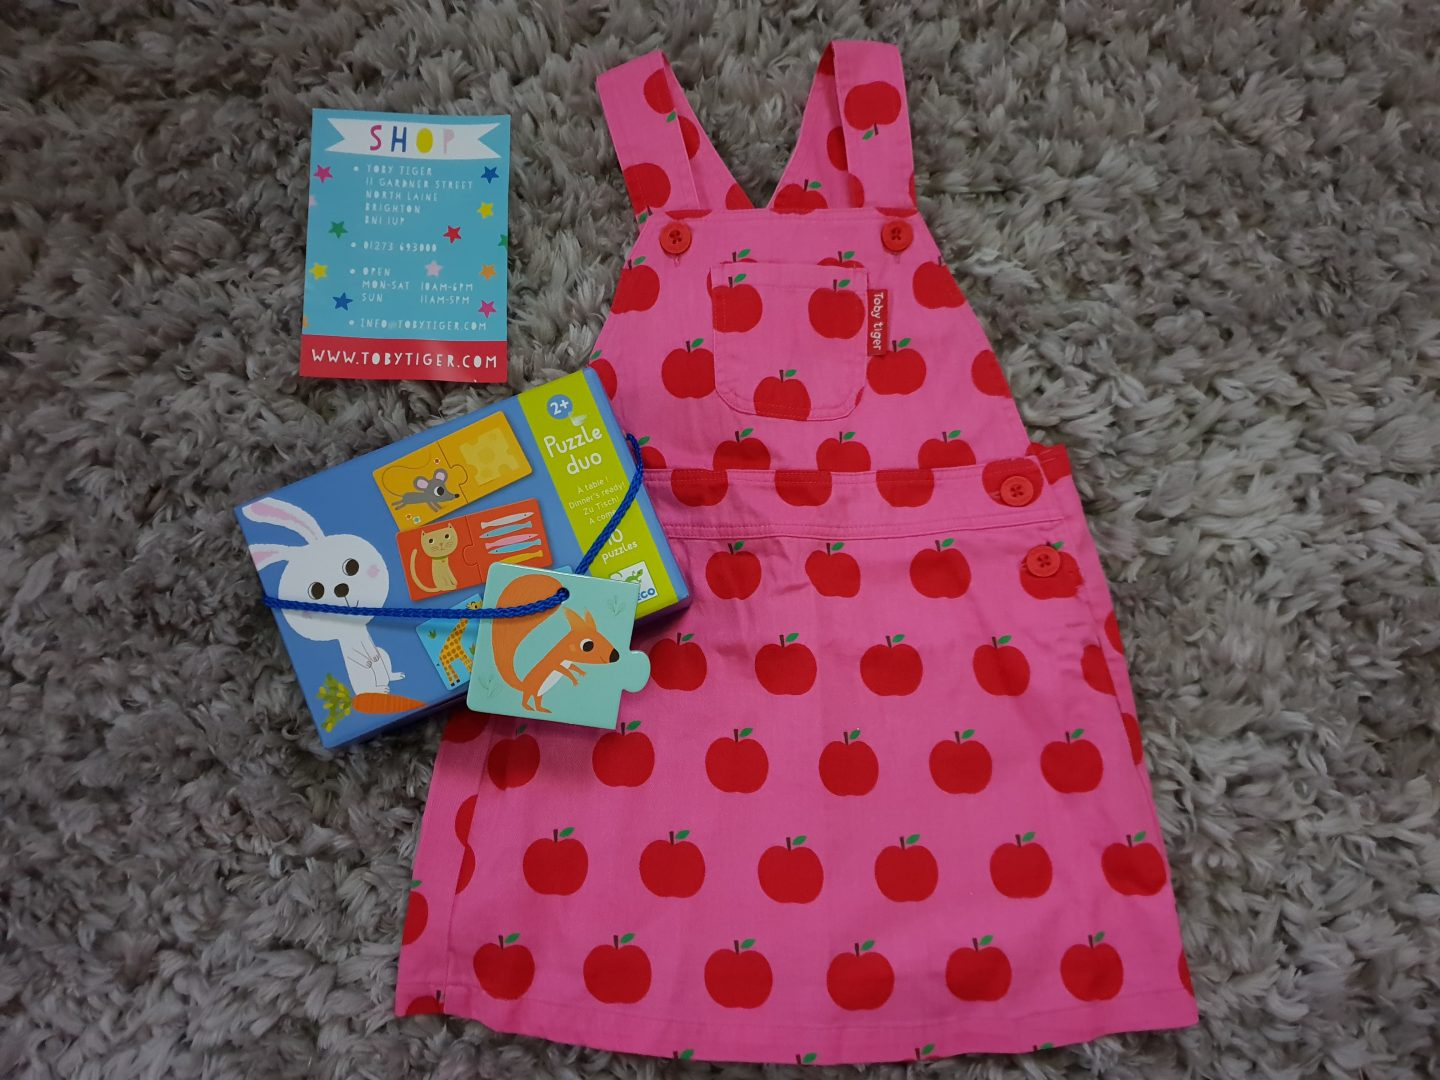 Toby Tiger pink apple print dungaree dress and puzzle